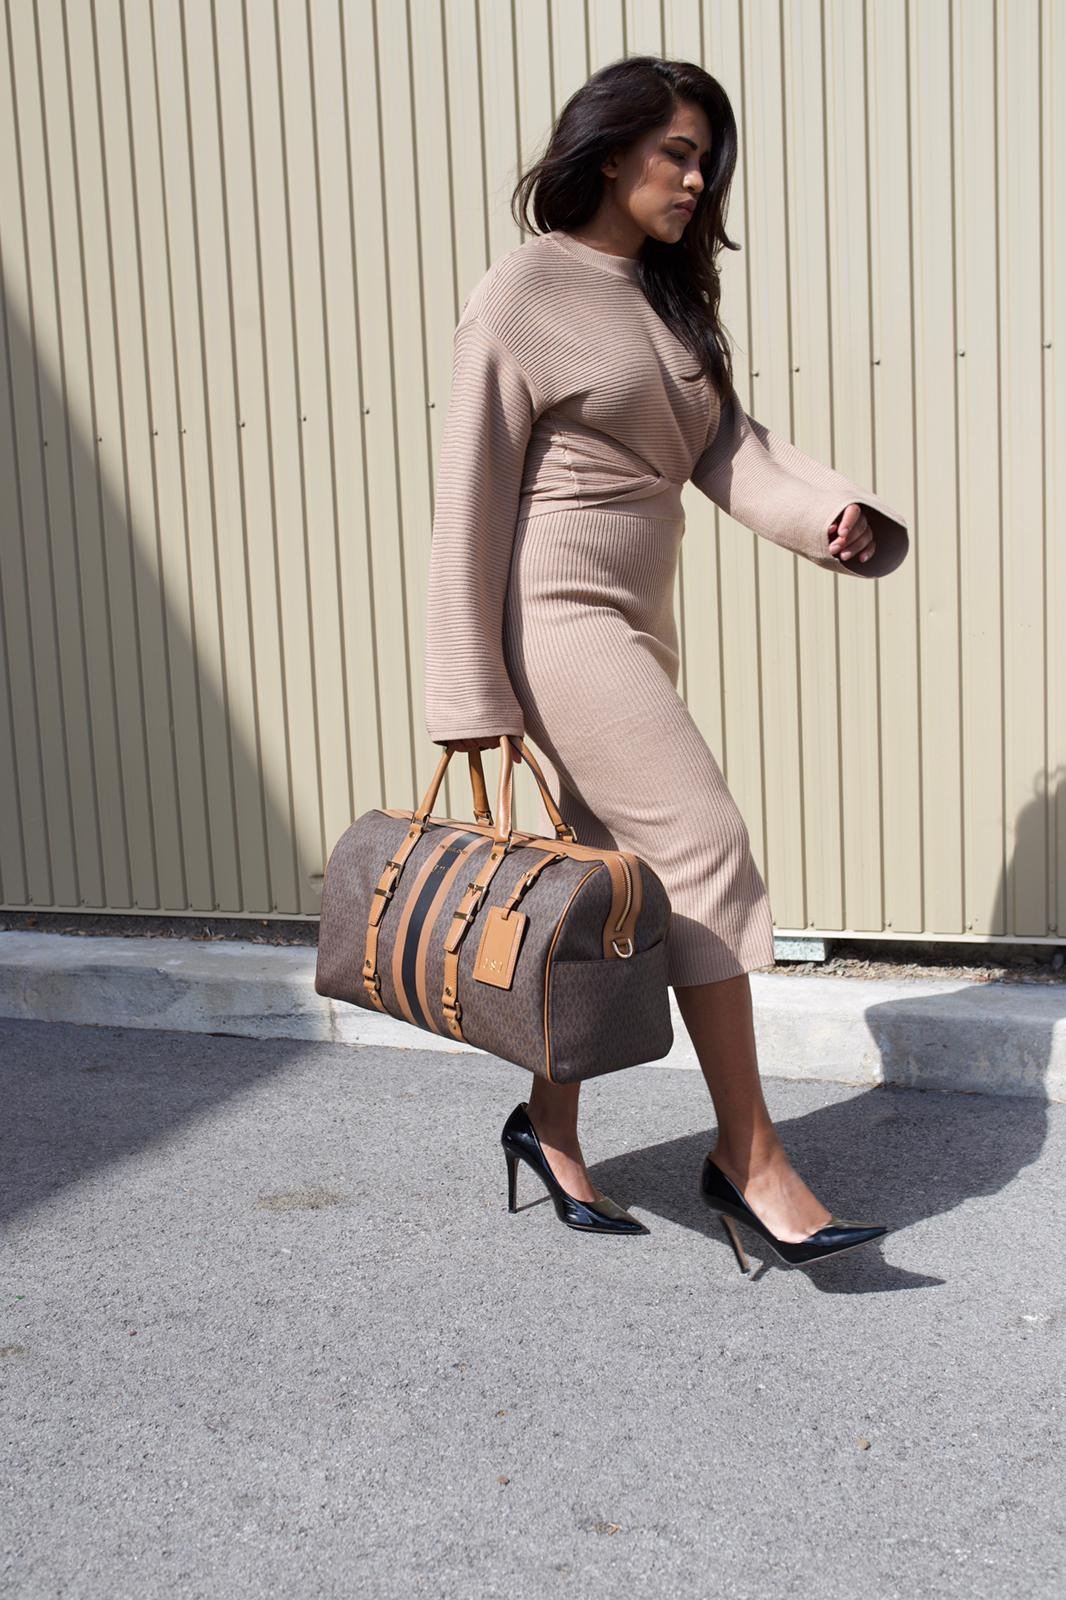 Co-Ord Outfit with Heels and Weekender Bag